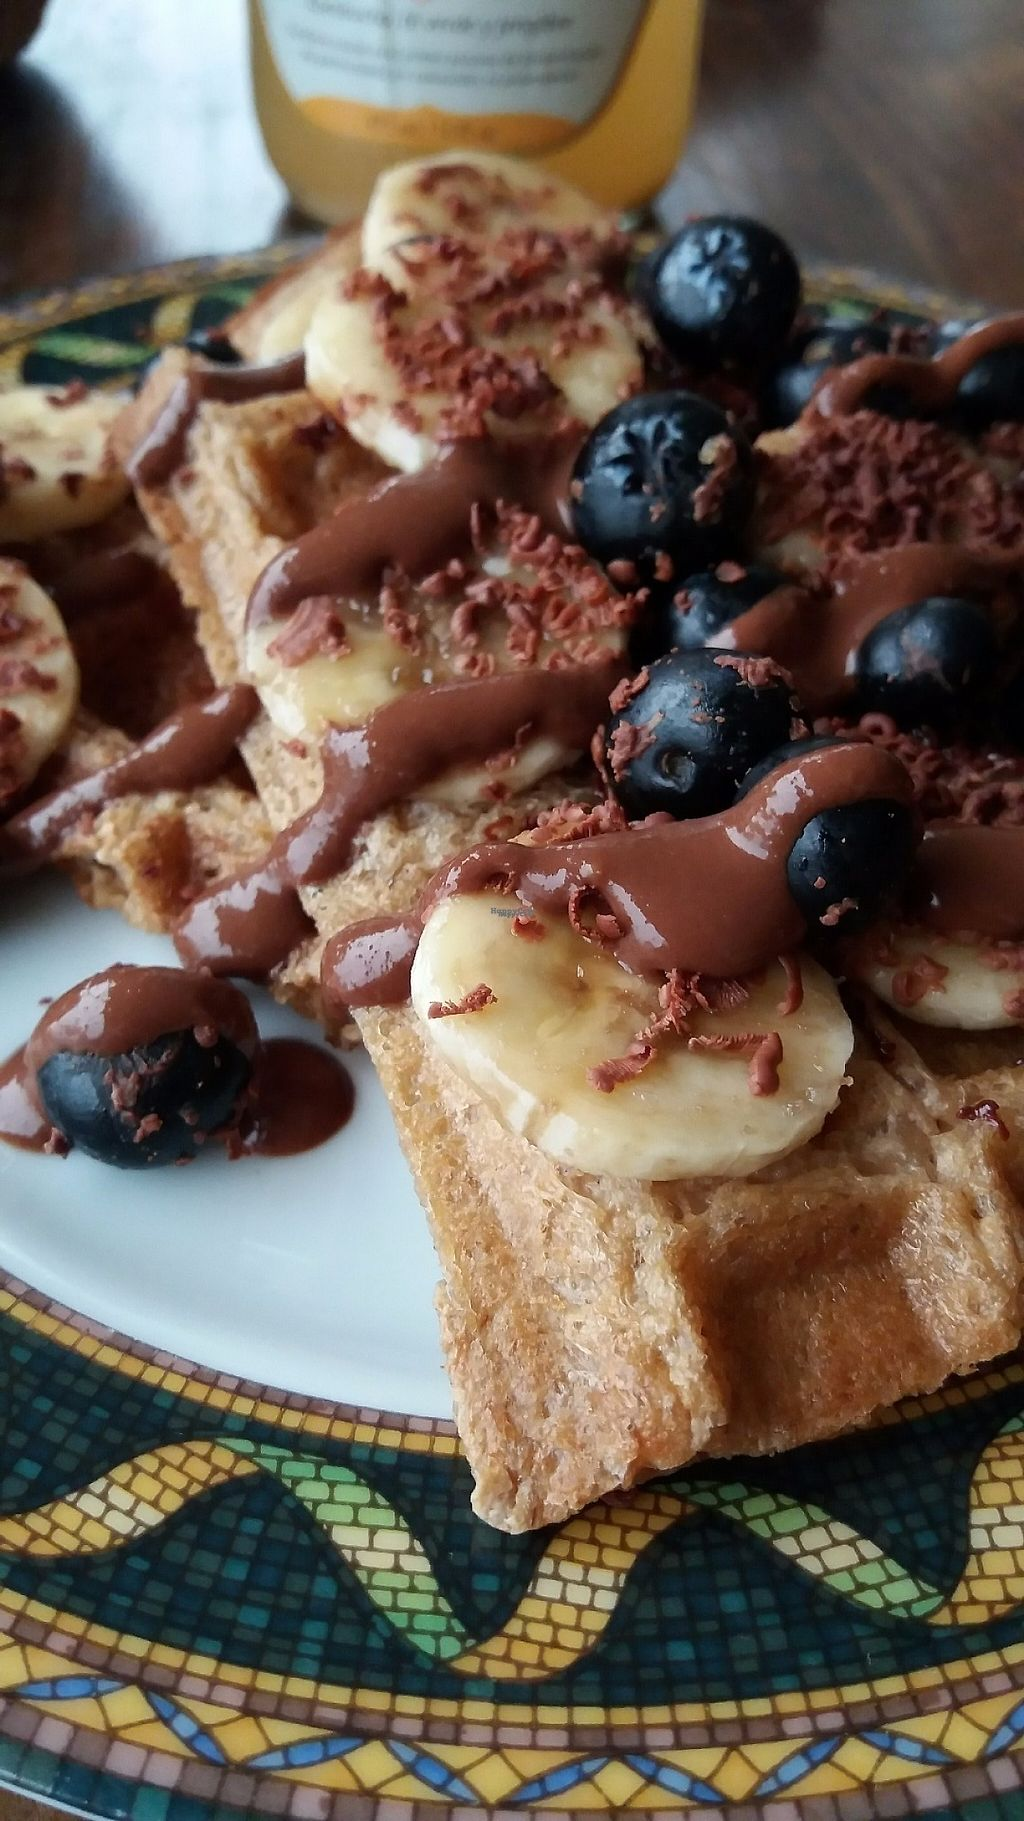 "Photo of Raw Cafe - Independencia  by <a href=""/members/profile/Arta"">Arta</a> <br/>Waffles <br/> March 20, 2017  - <a href='/contact/abuse/image/41640/238902'>Report</a>"